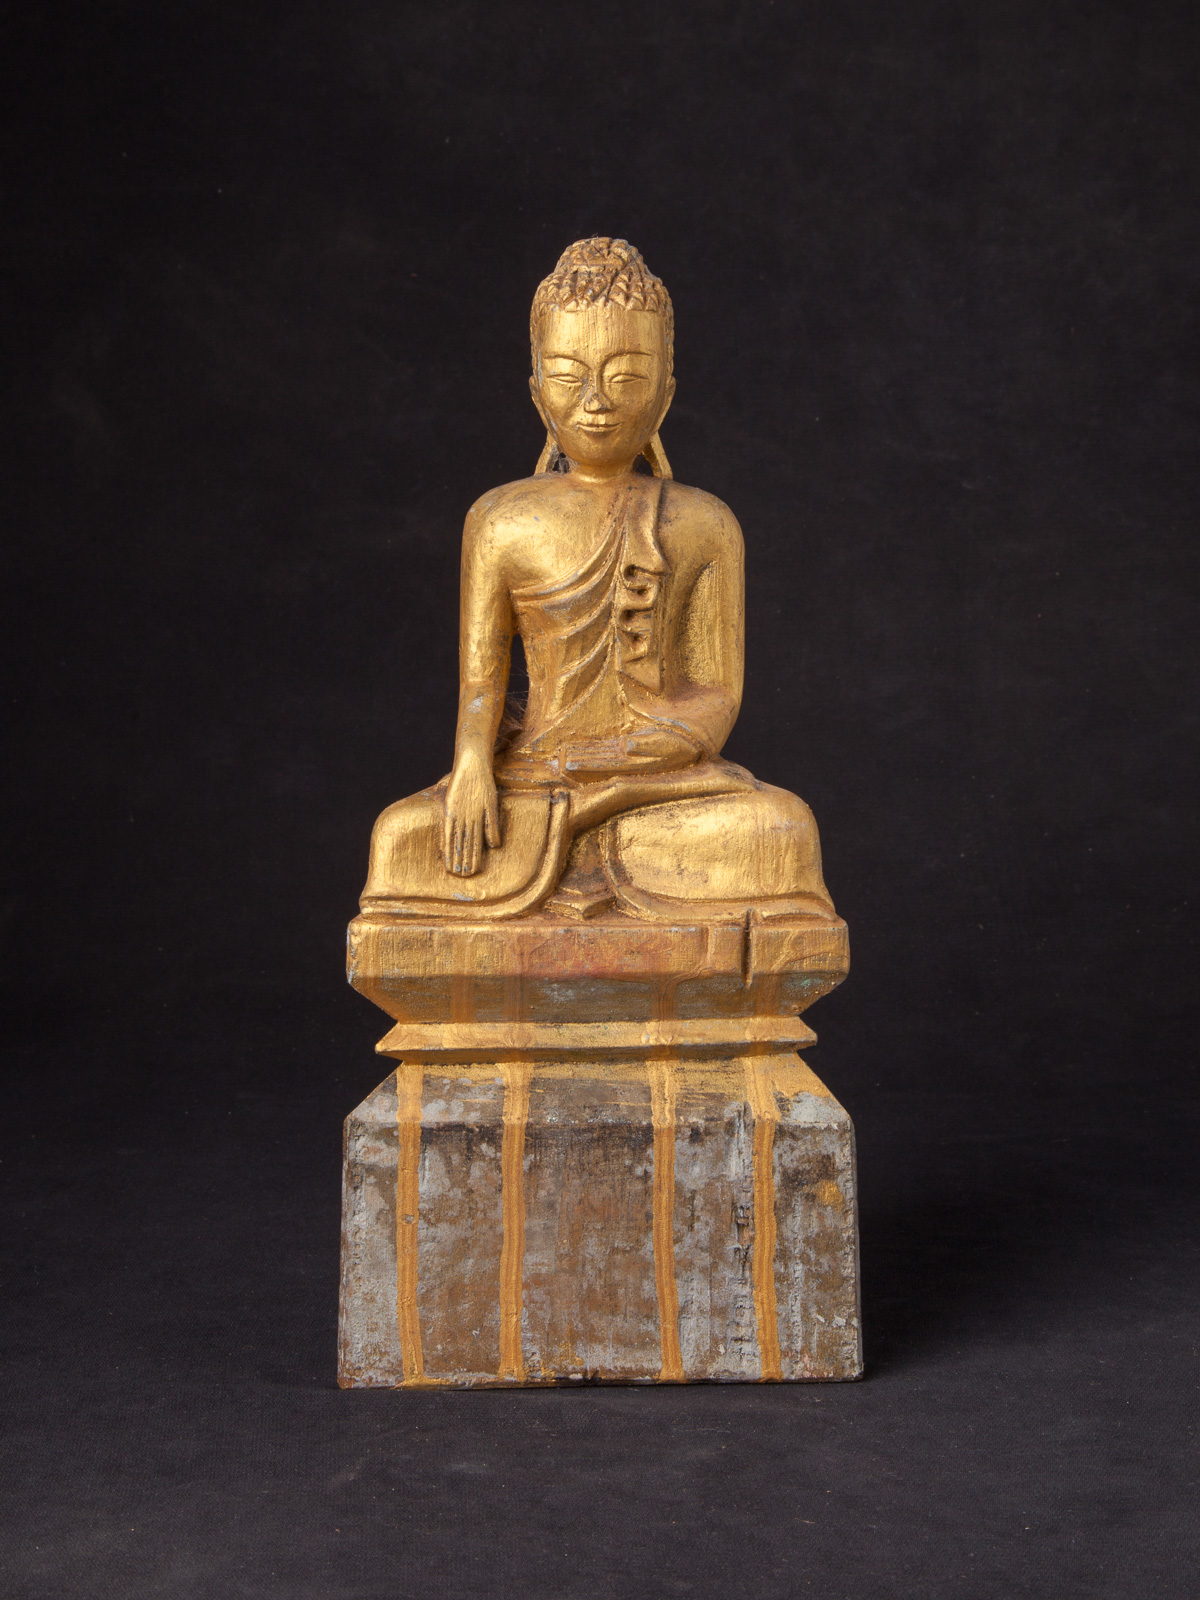 Old Burmese wooden Buddha statue from Burma